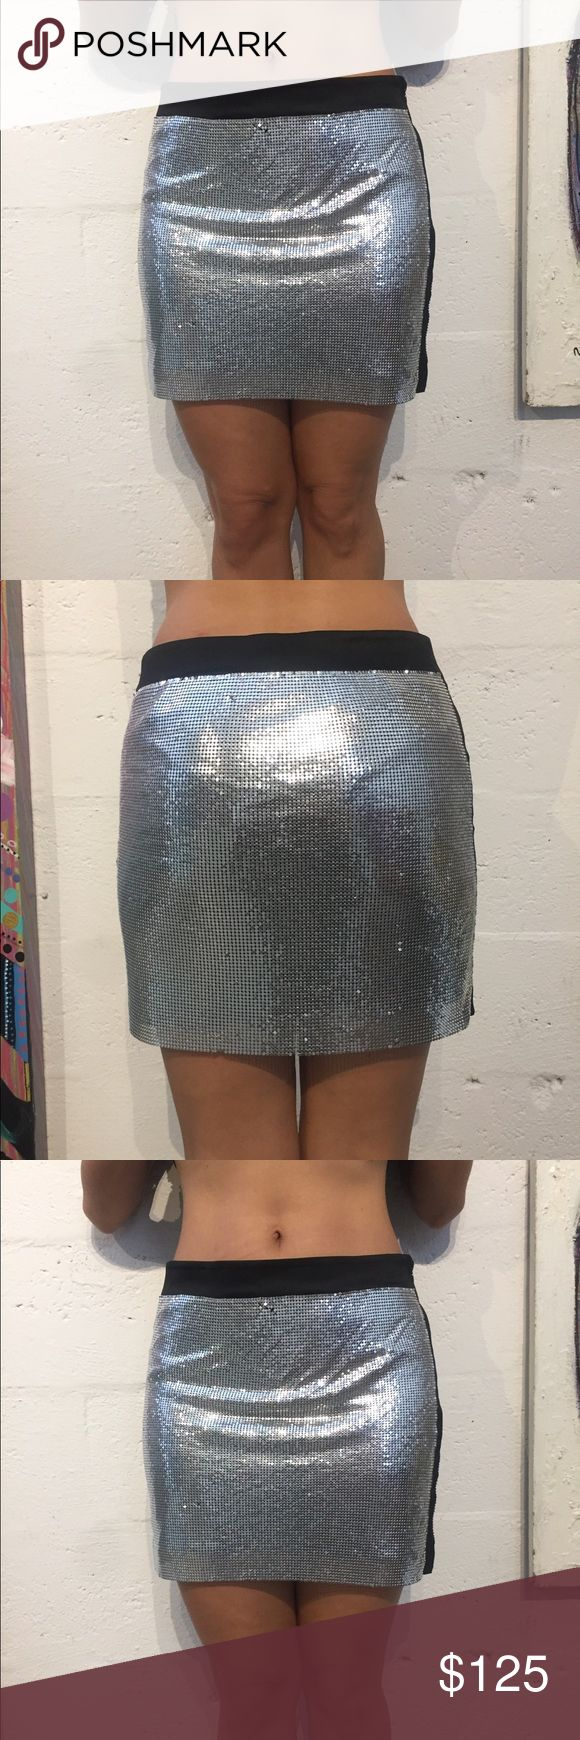 Bebe xxs mesh silver black skirt mini club dancer Bebe xxs mesh silver black skirt mini club dancer  There is two Little mesh beads missing the connectors.  You have to look closely.  But in overall it's in great condition bebe Skirts Mini